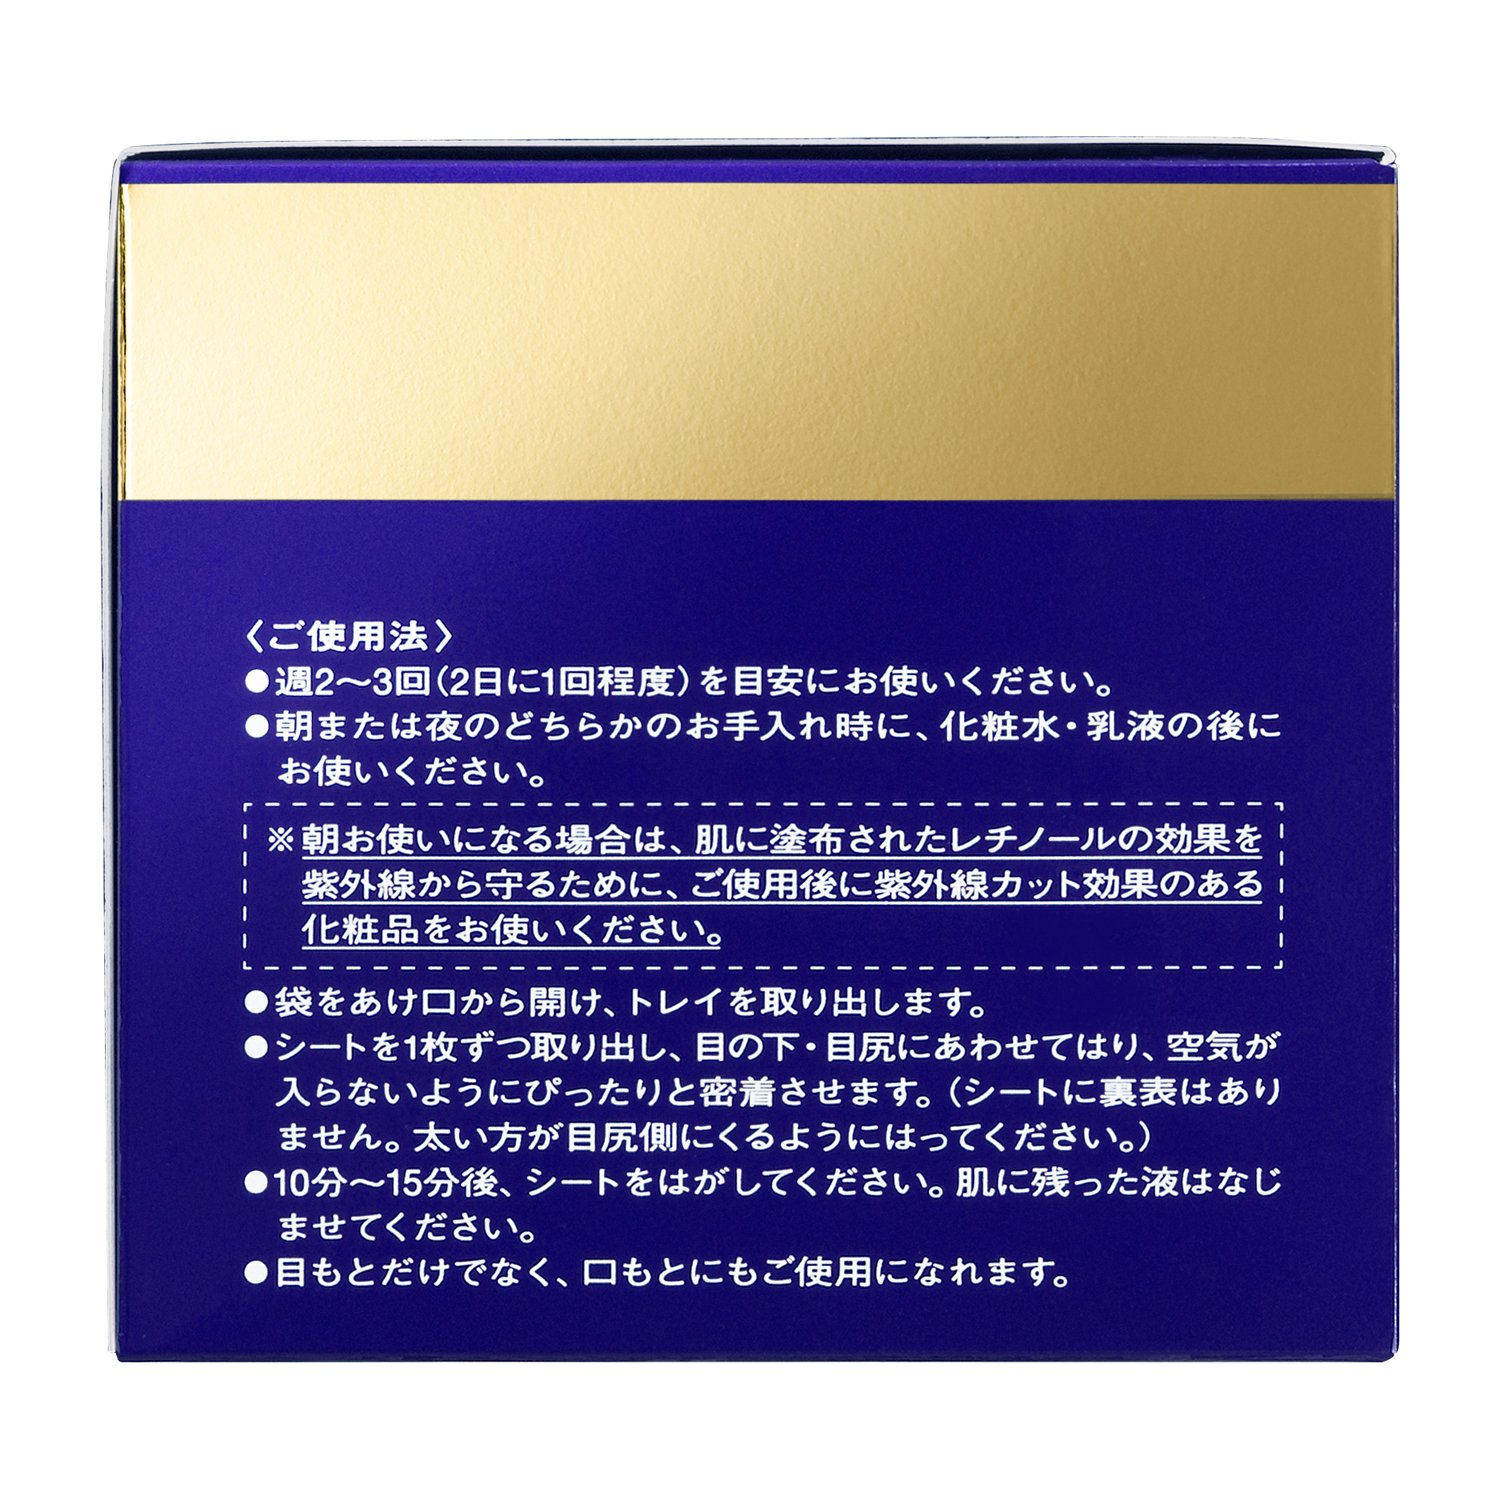 Shiseido Revital Wrinklelift Retino Science Aa Eye Mask 12 Pairs by Shiseido (Image #4)